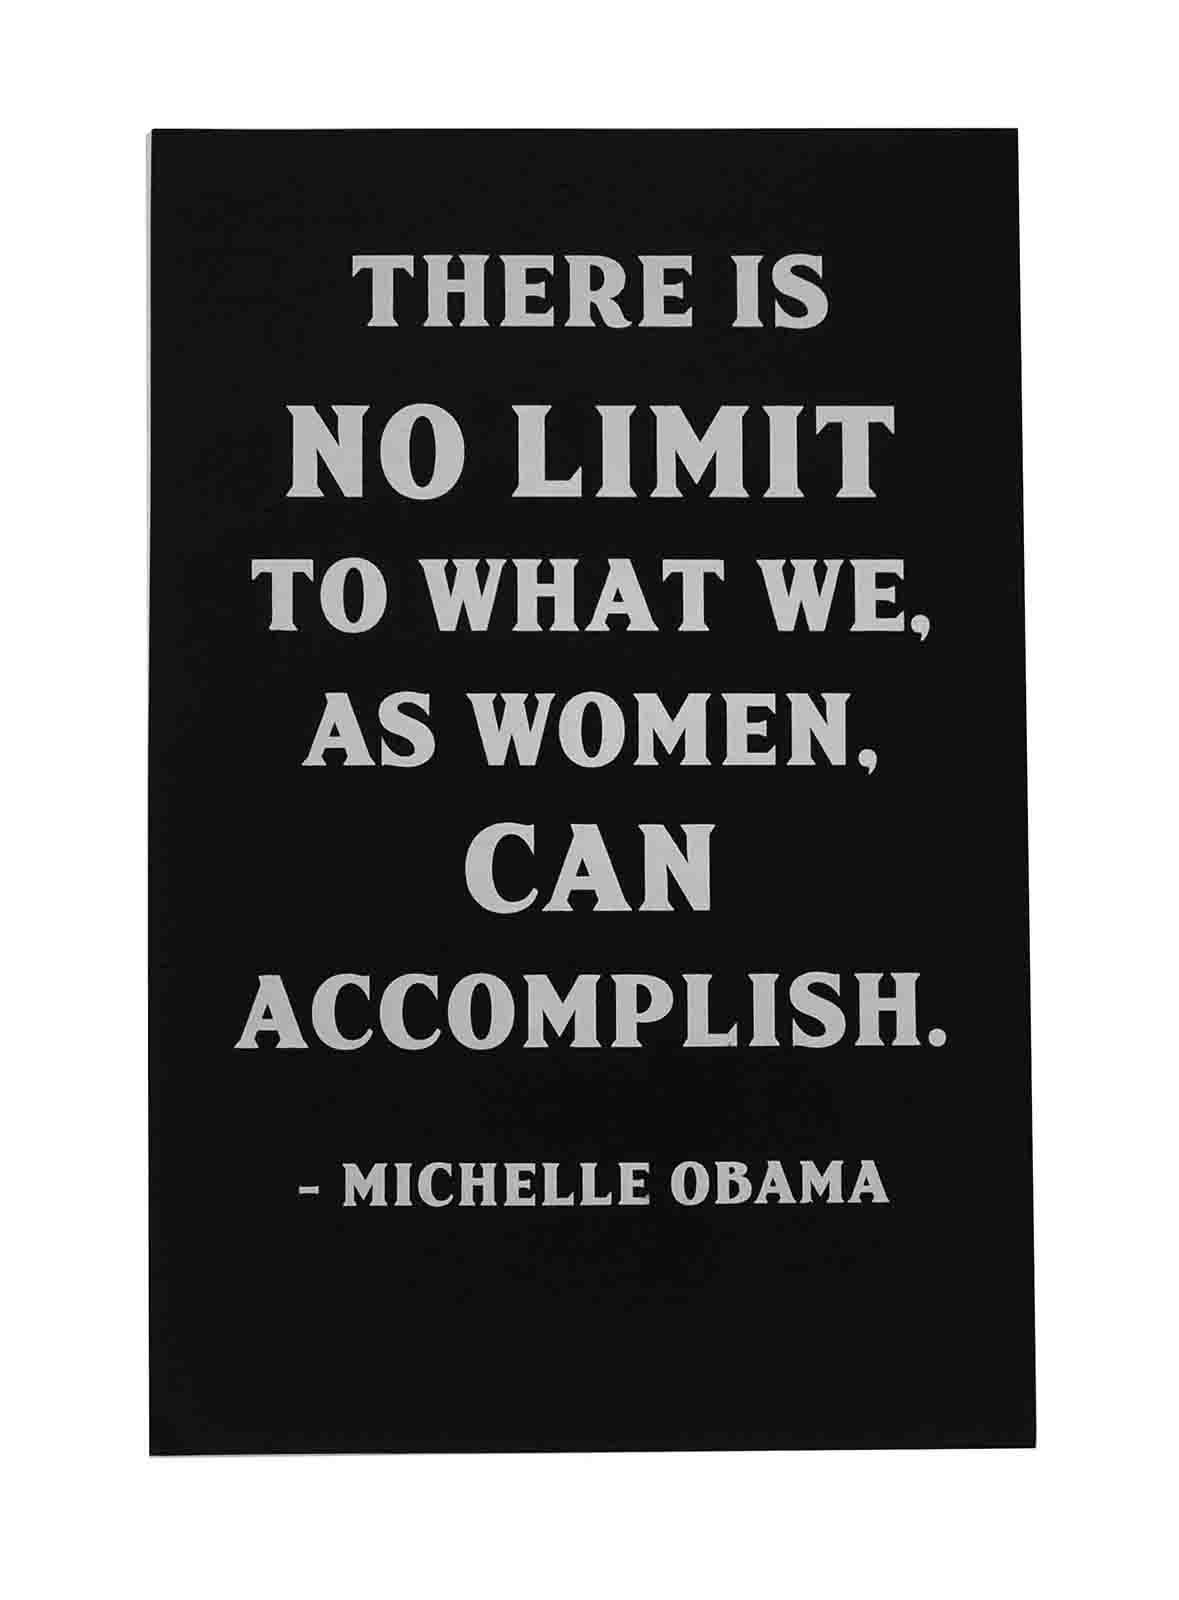 Ape_Bleakney_'There Is No Limit' Women's March Poster on Construction Blacktop, 12.5''x19''.jpg